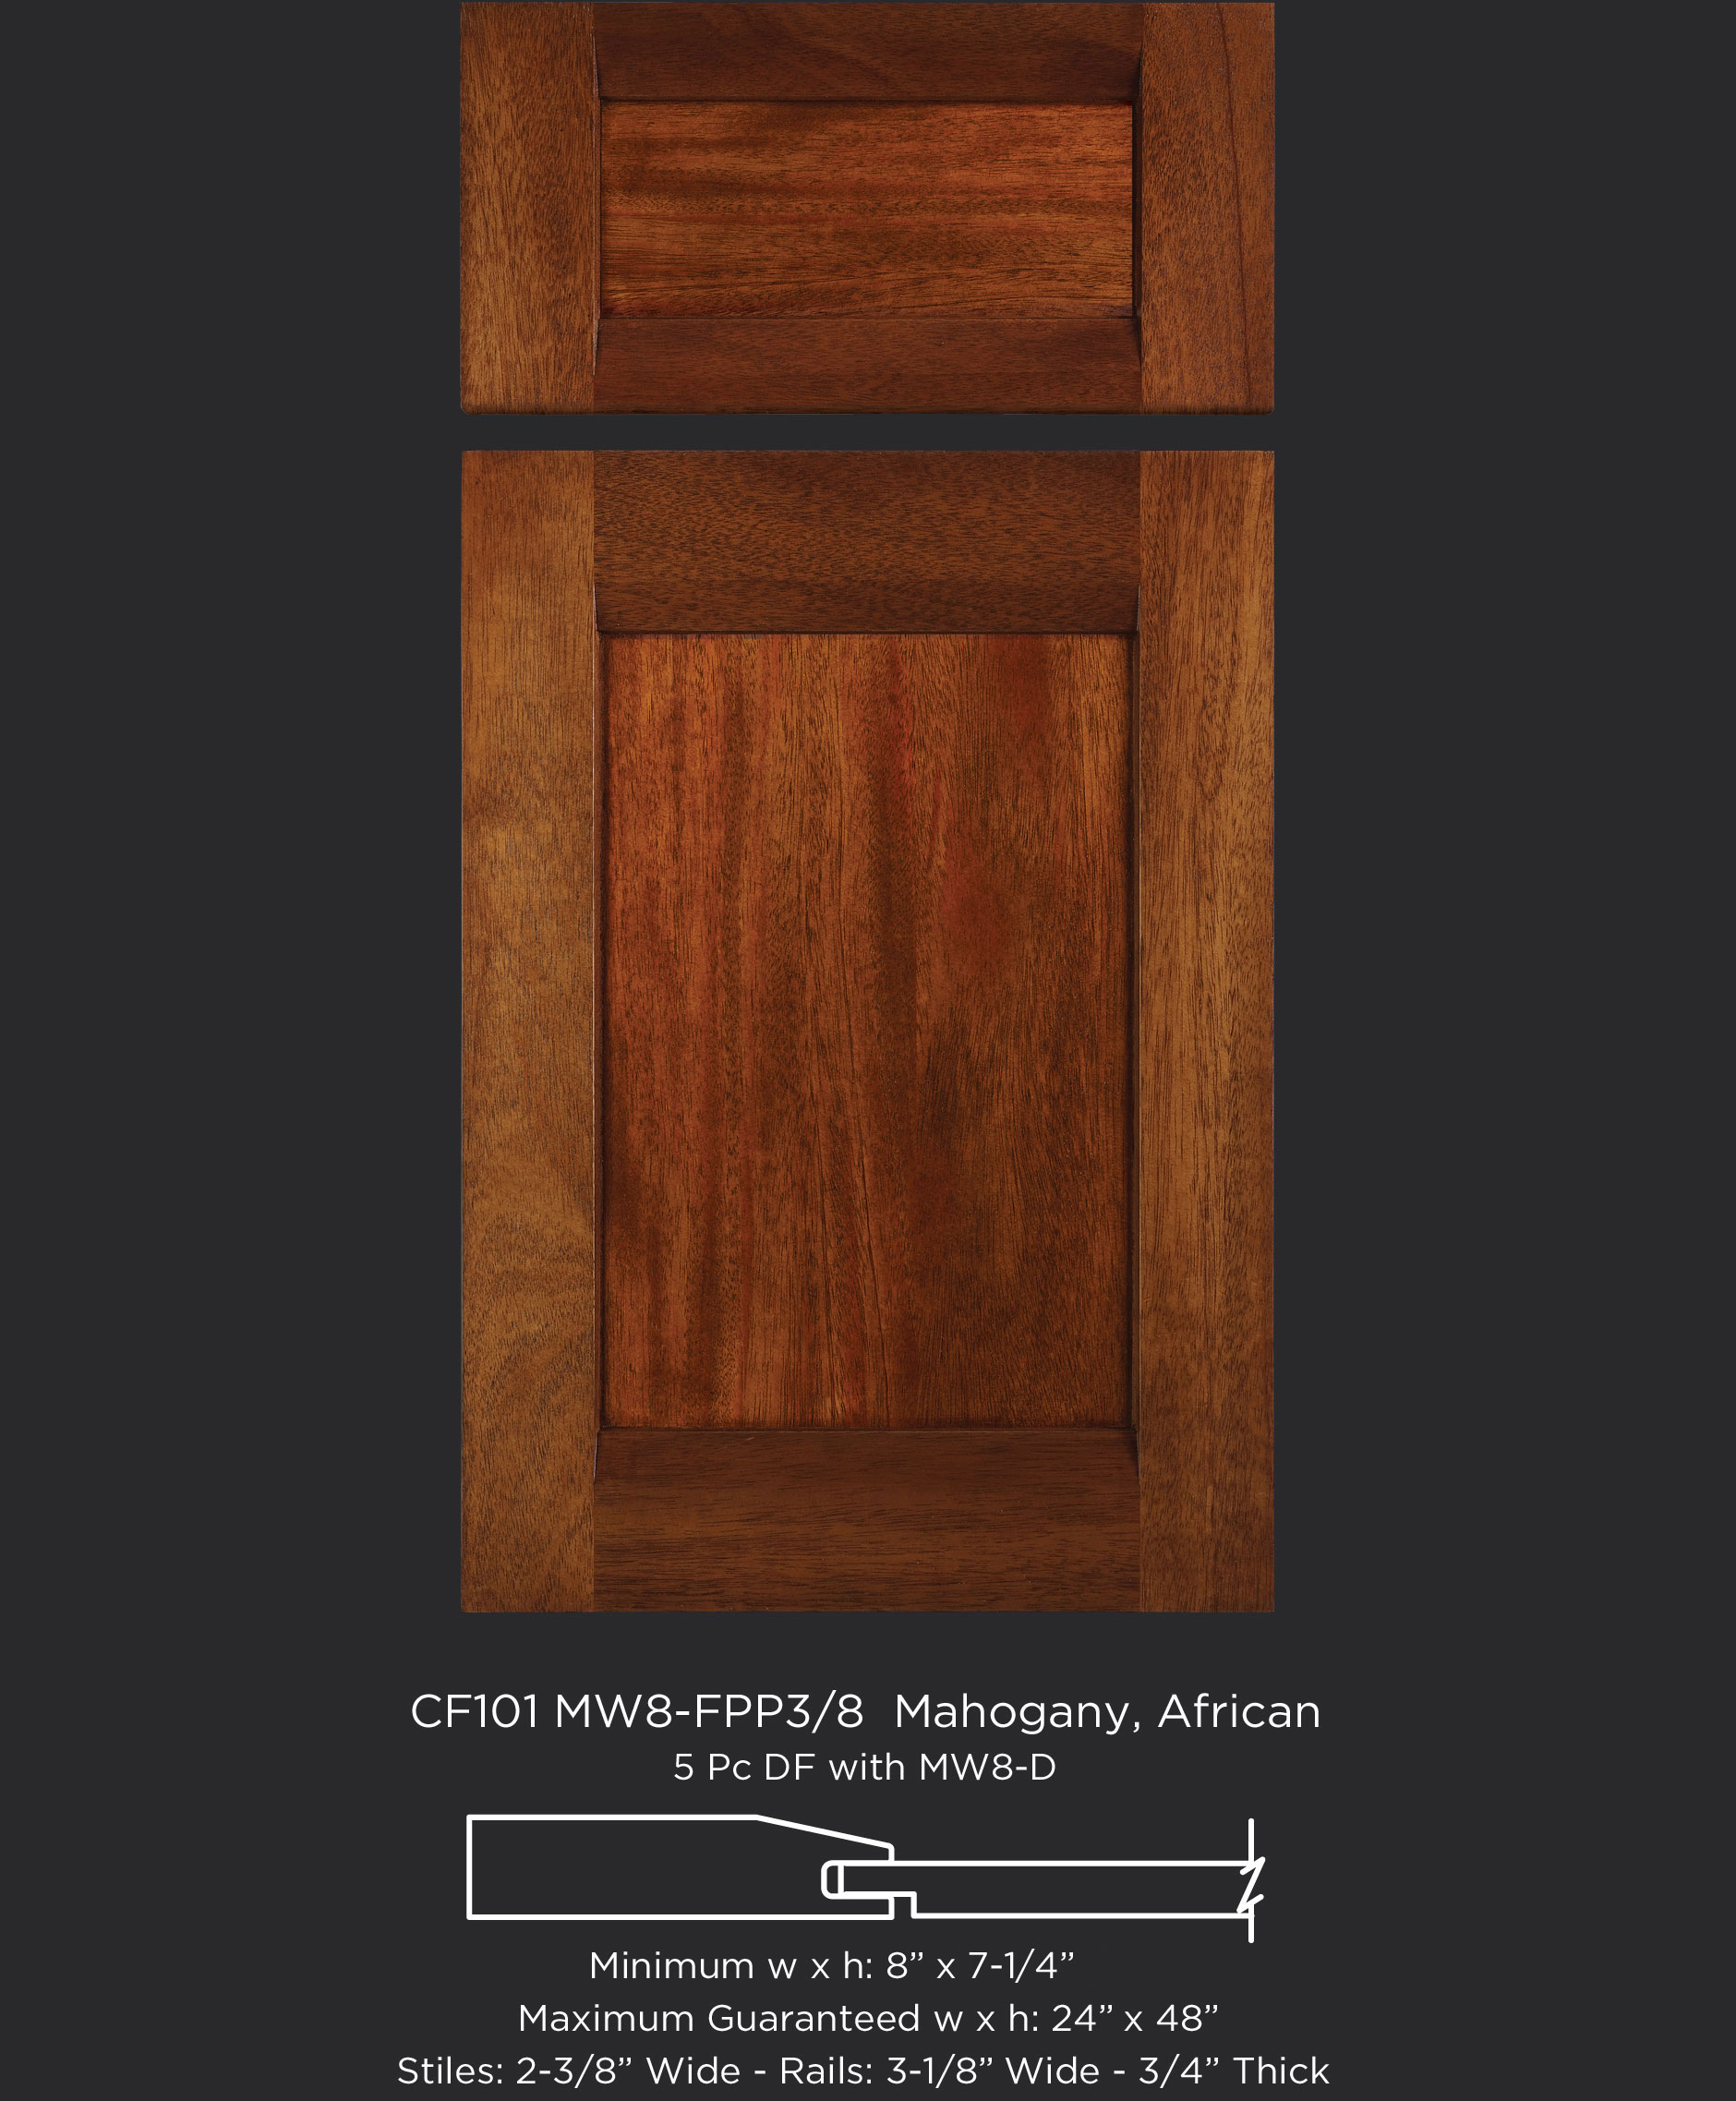 Combination Frame Cabinet Door CF101 MW8-FP3/8 in Mahogany, African and 5-piece drawer front with MW8-D